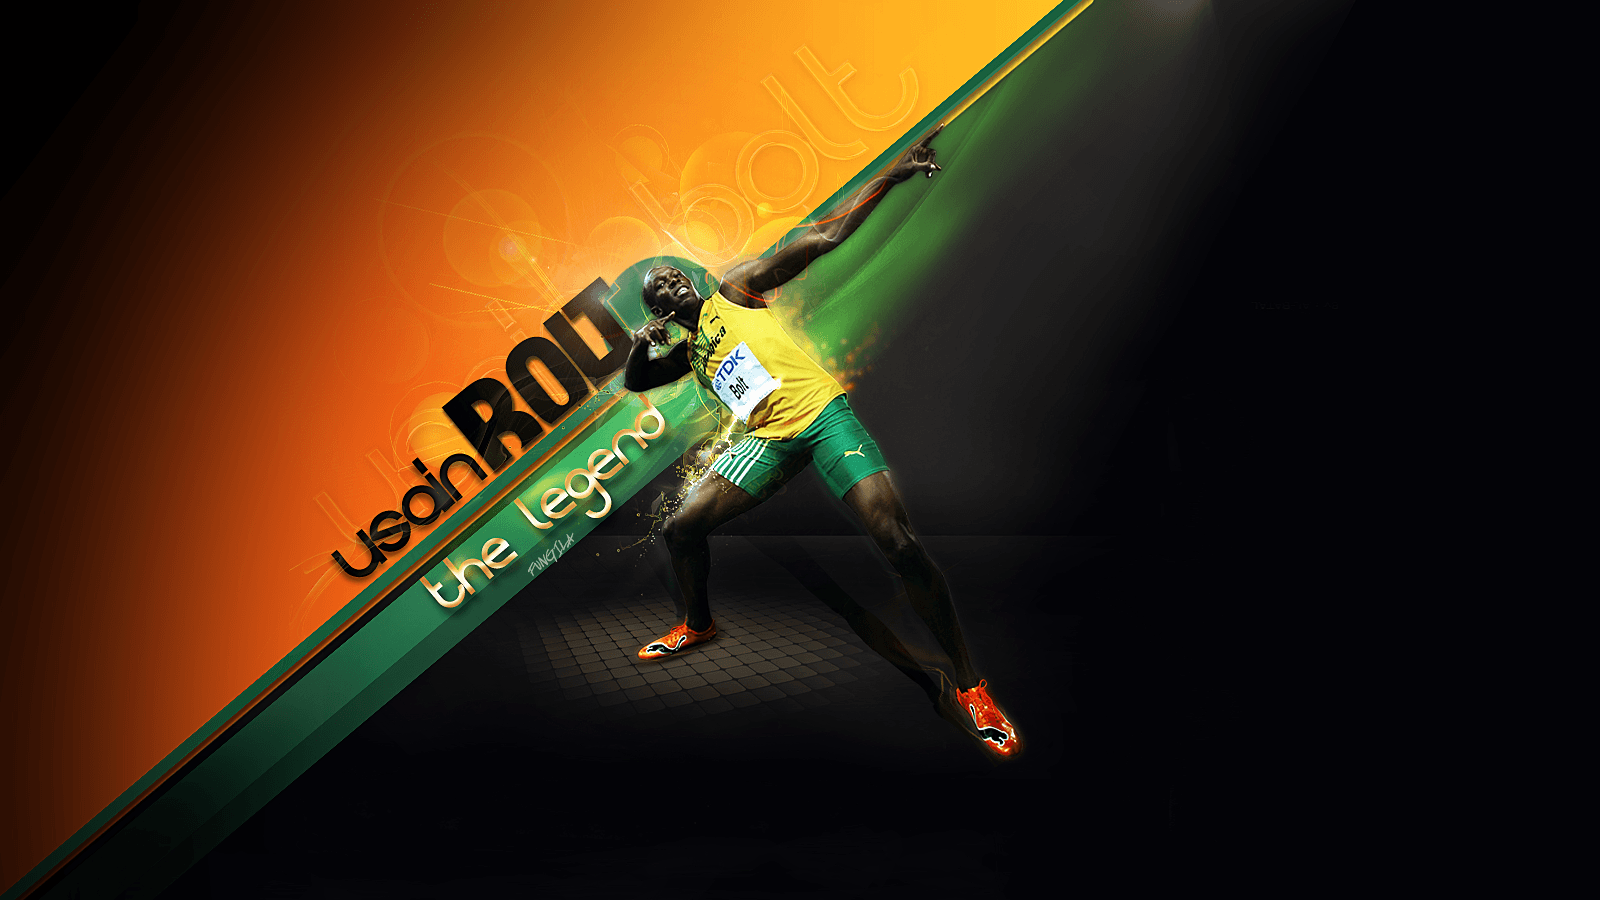 usain bolt by fungila on DeviantArt